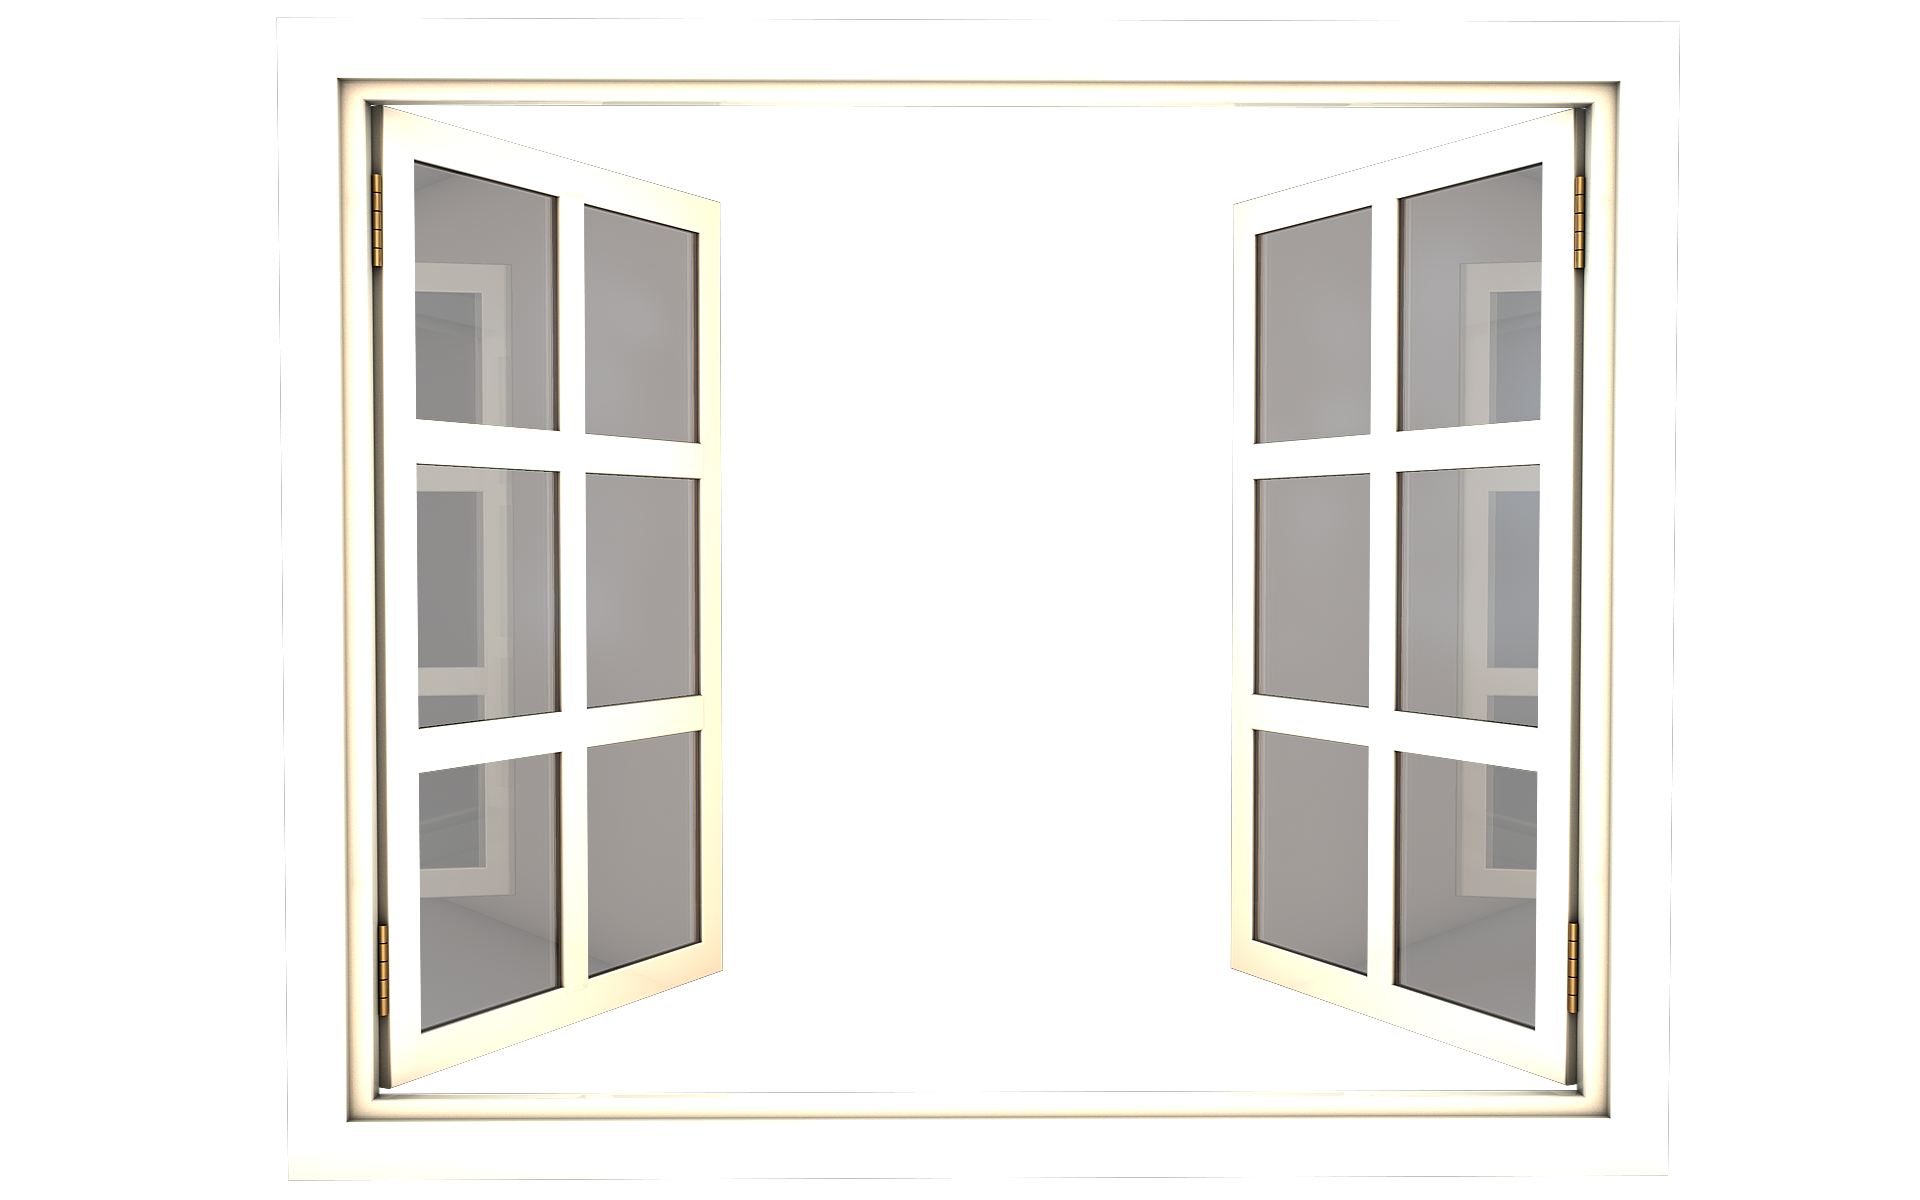 House windows png. Window images free download